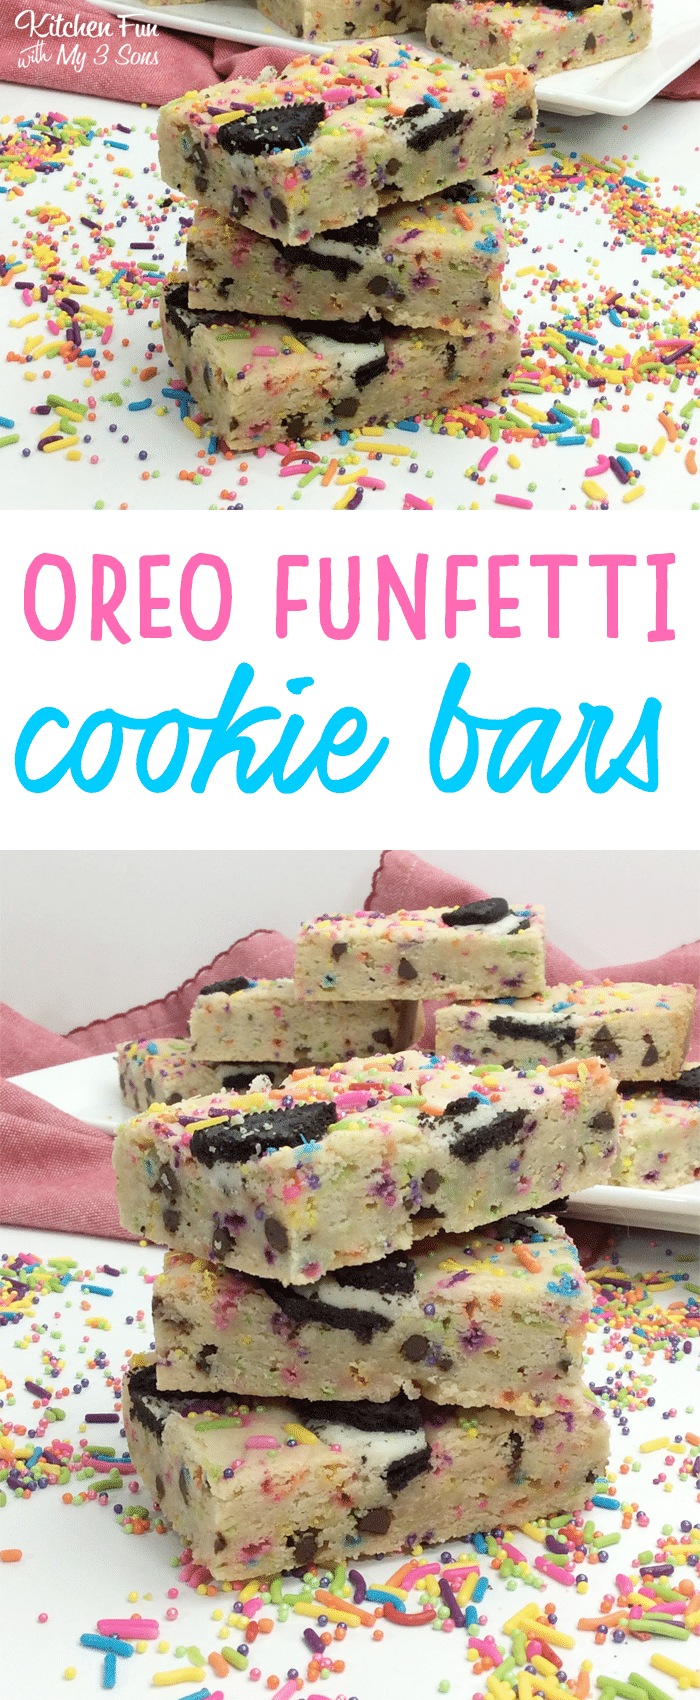 Oreo Funfetti Cookie Bars